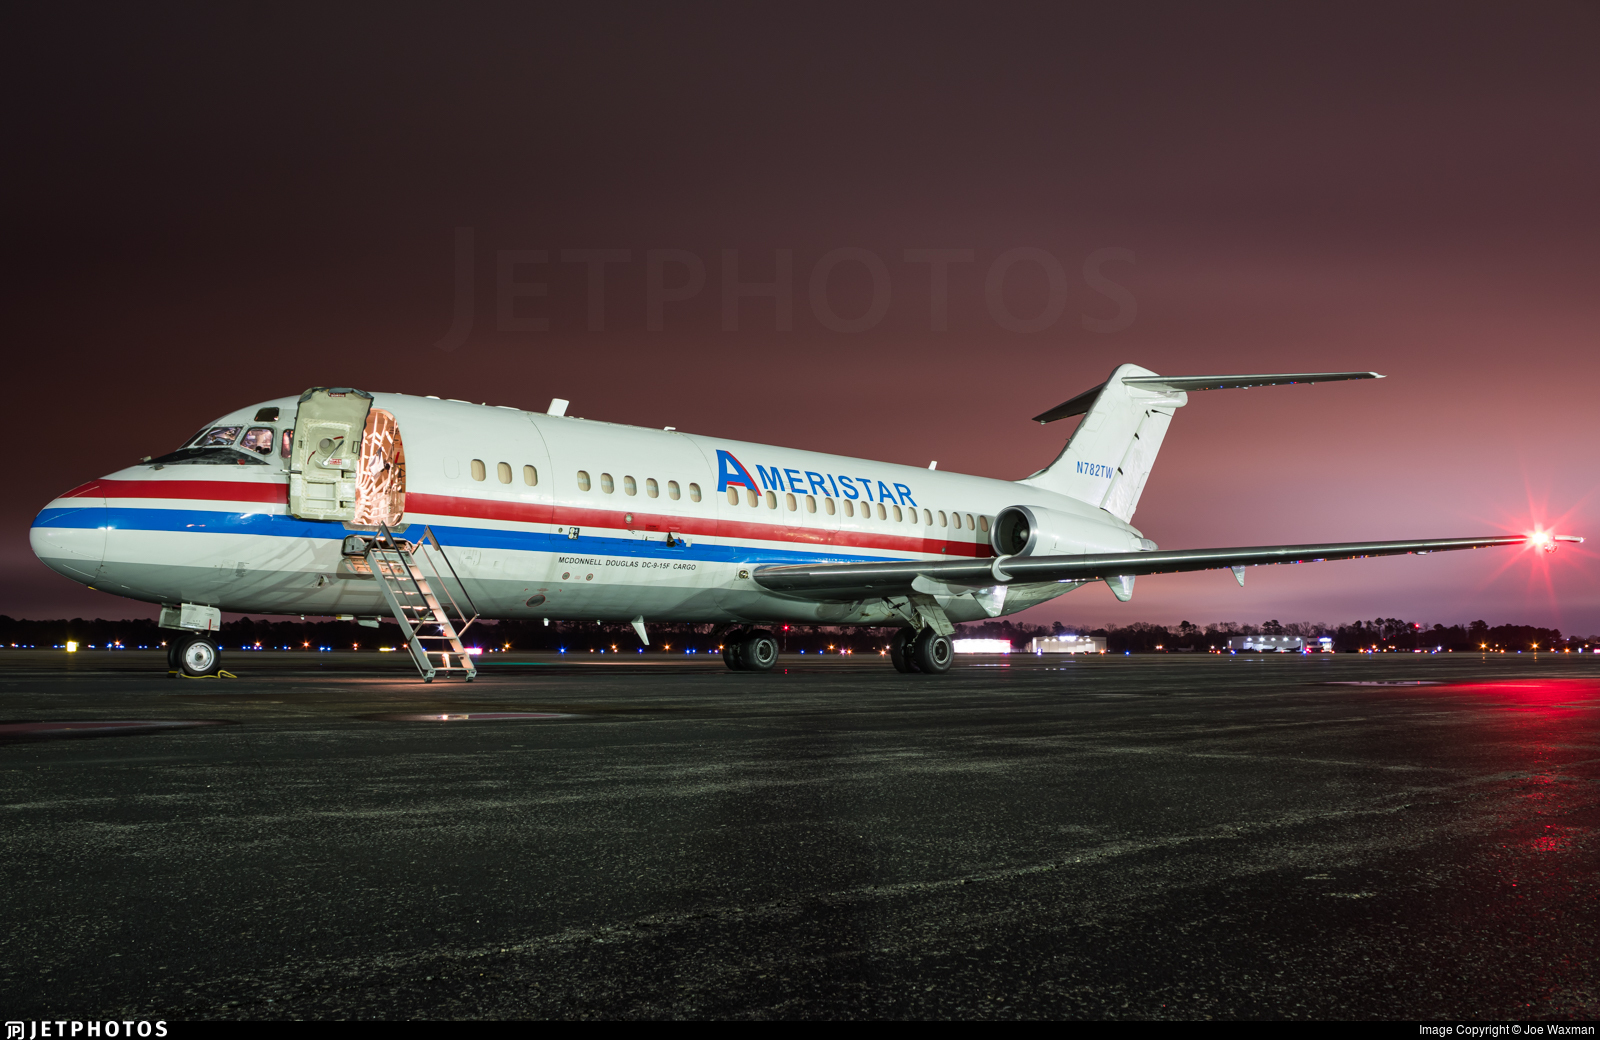 A 53 year old DC-9